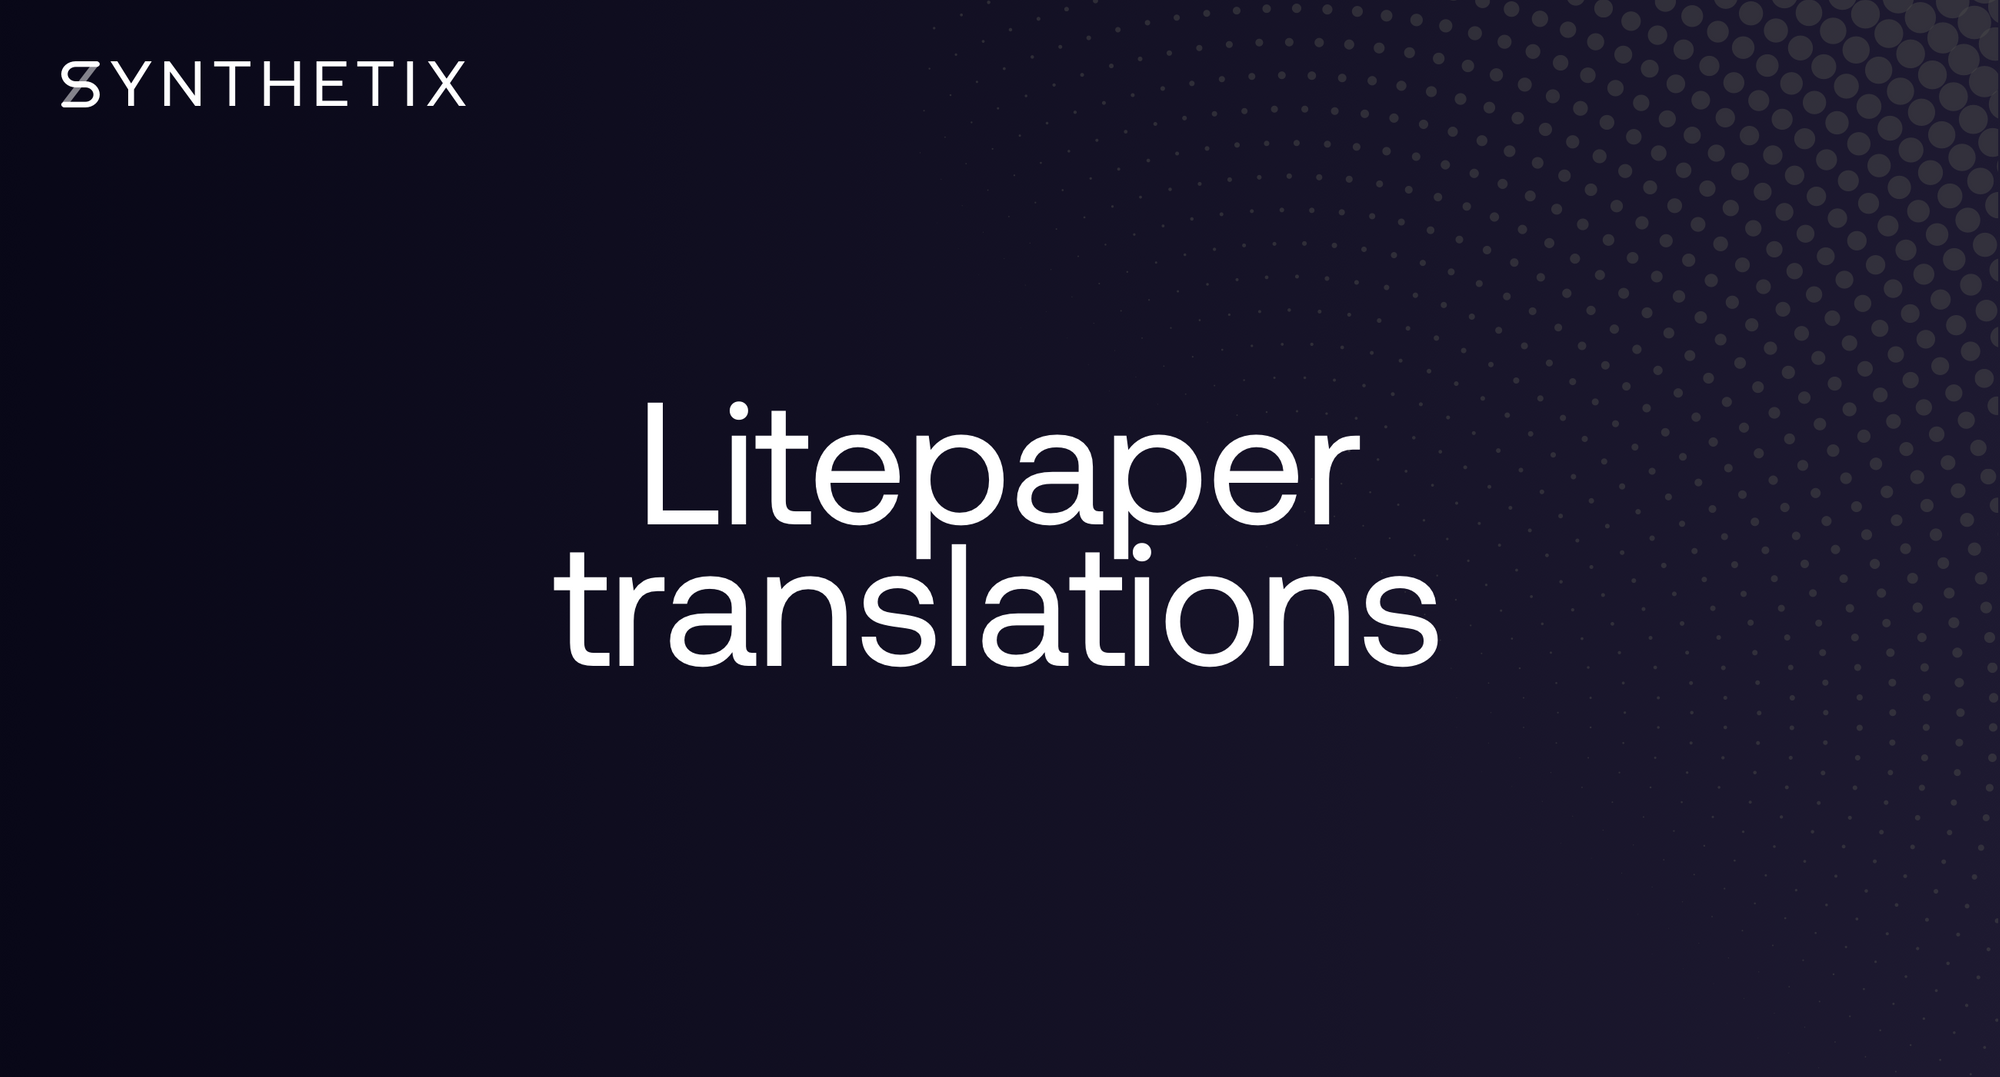 We're looking for community members to translate our litepaper!